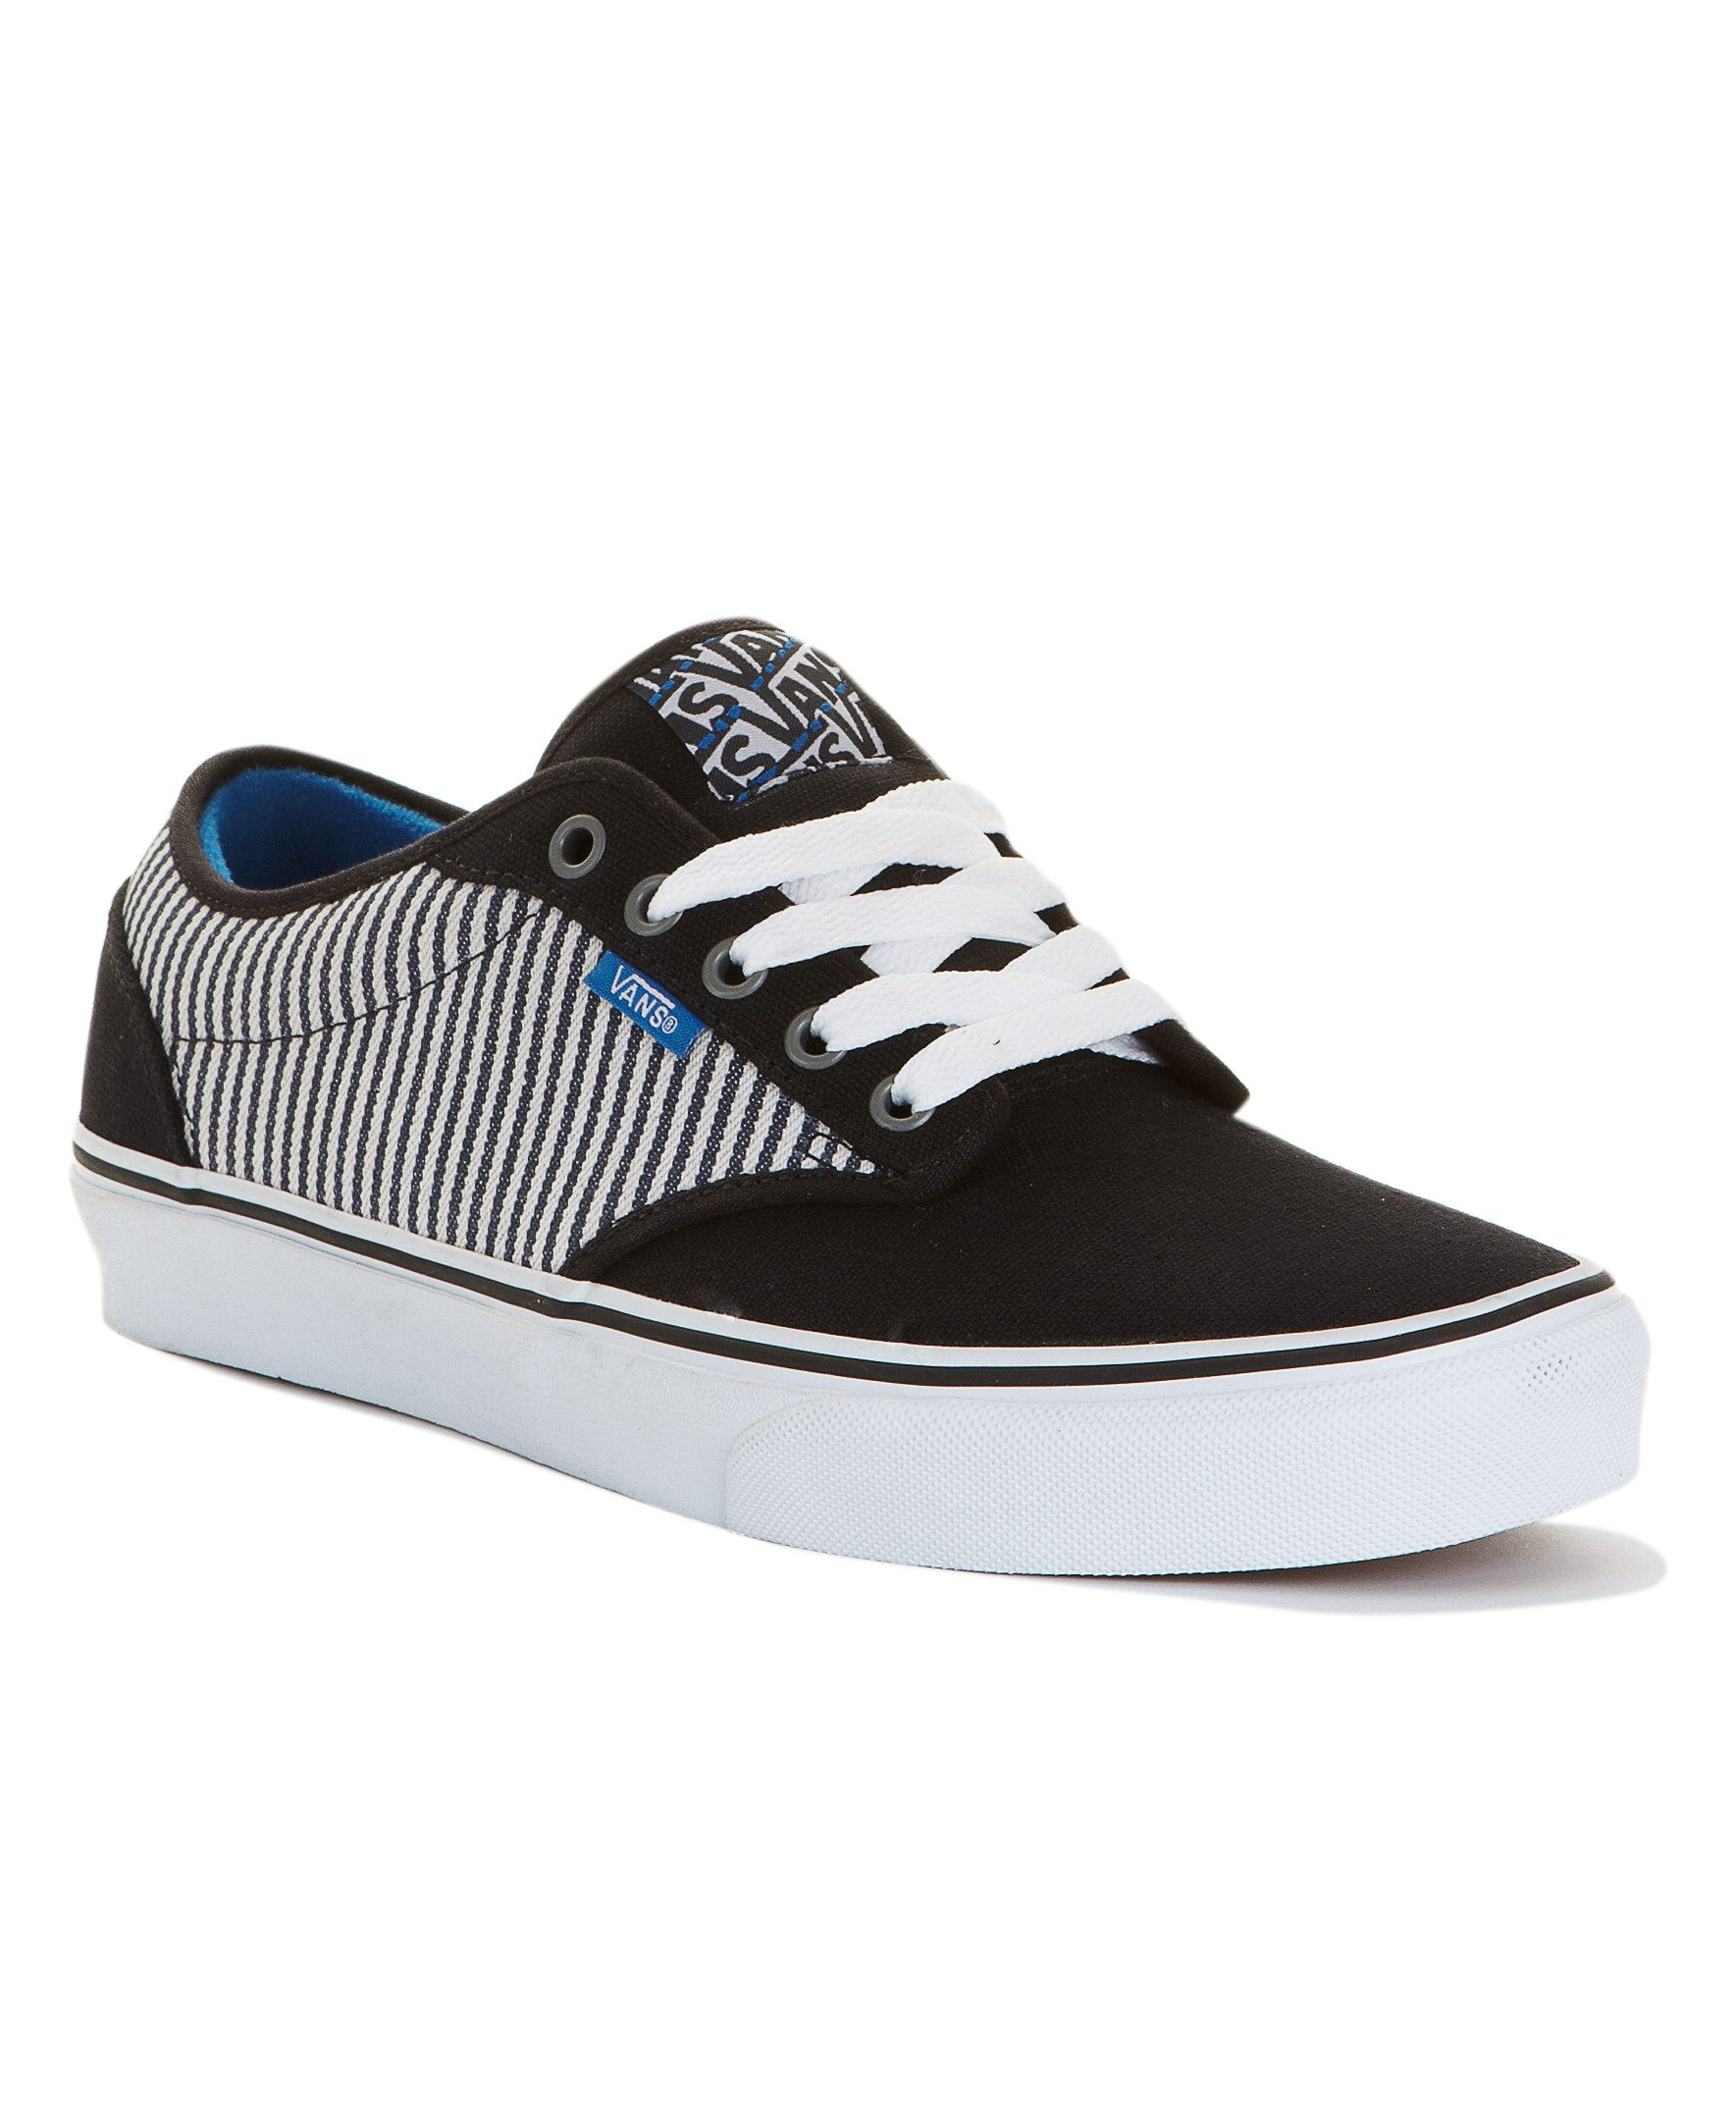 Atwood Low Lace-Up Sneakers - Shoes